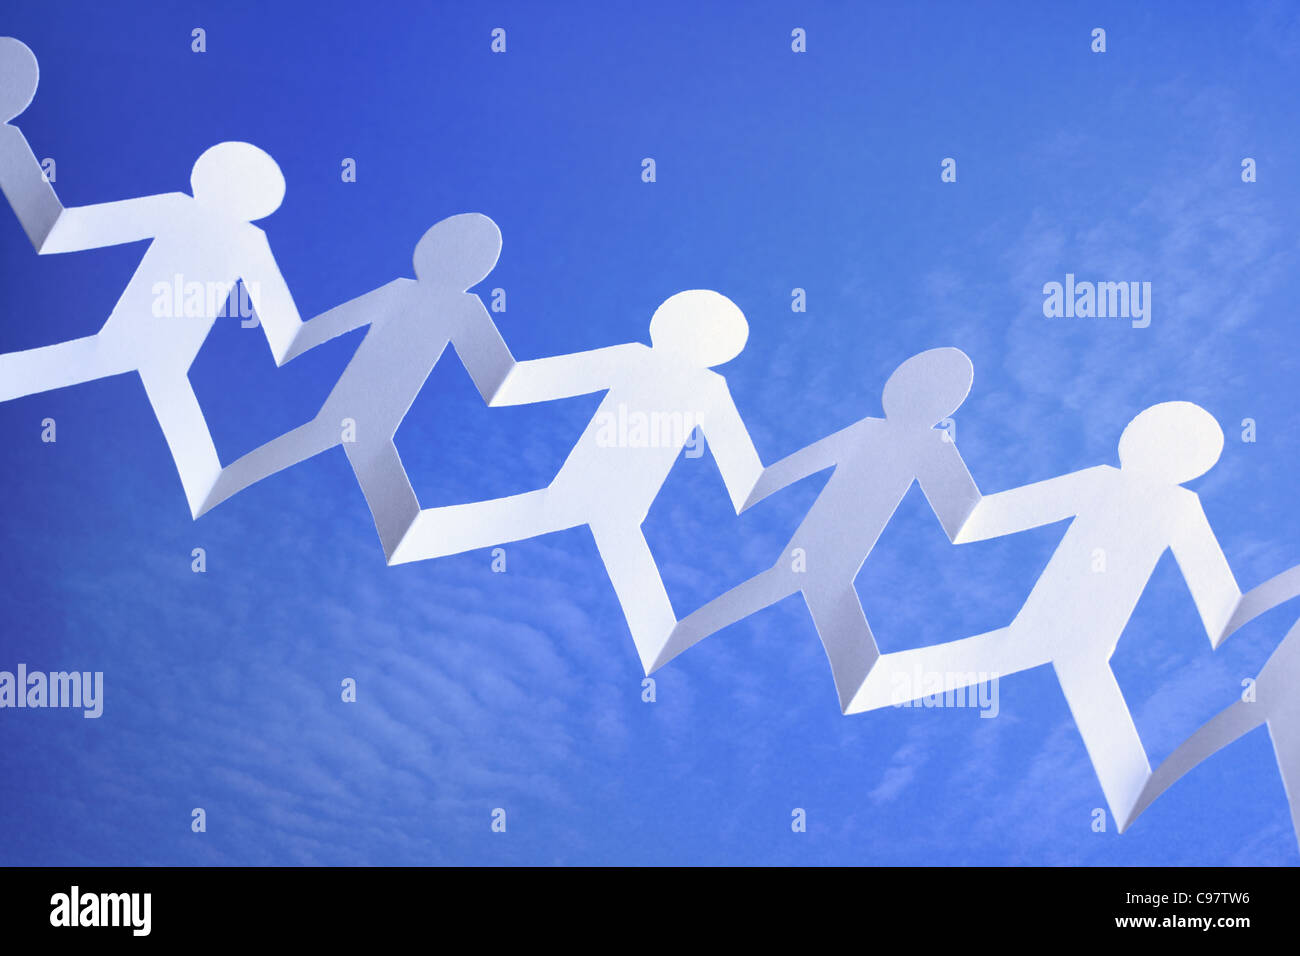 Teamwork and networking - Stock Image